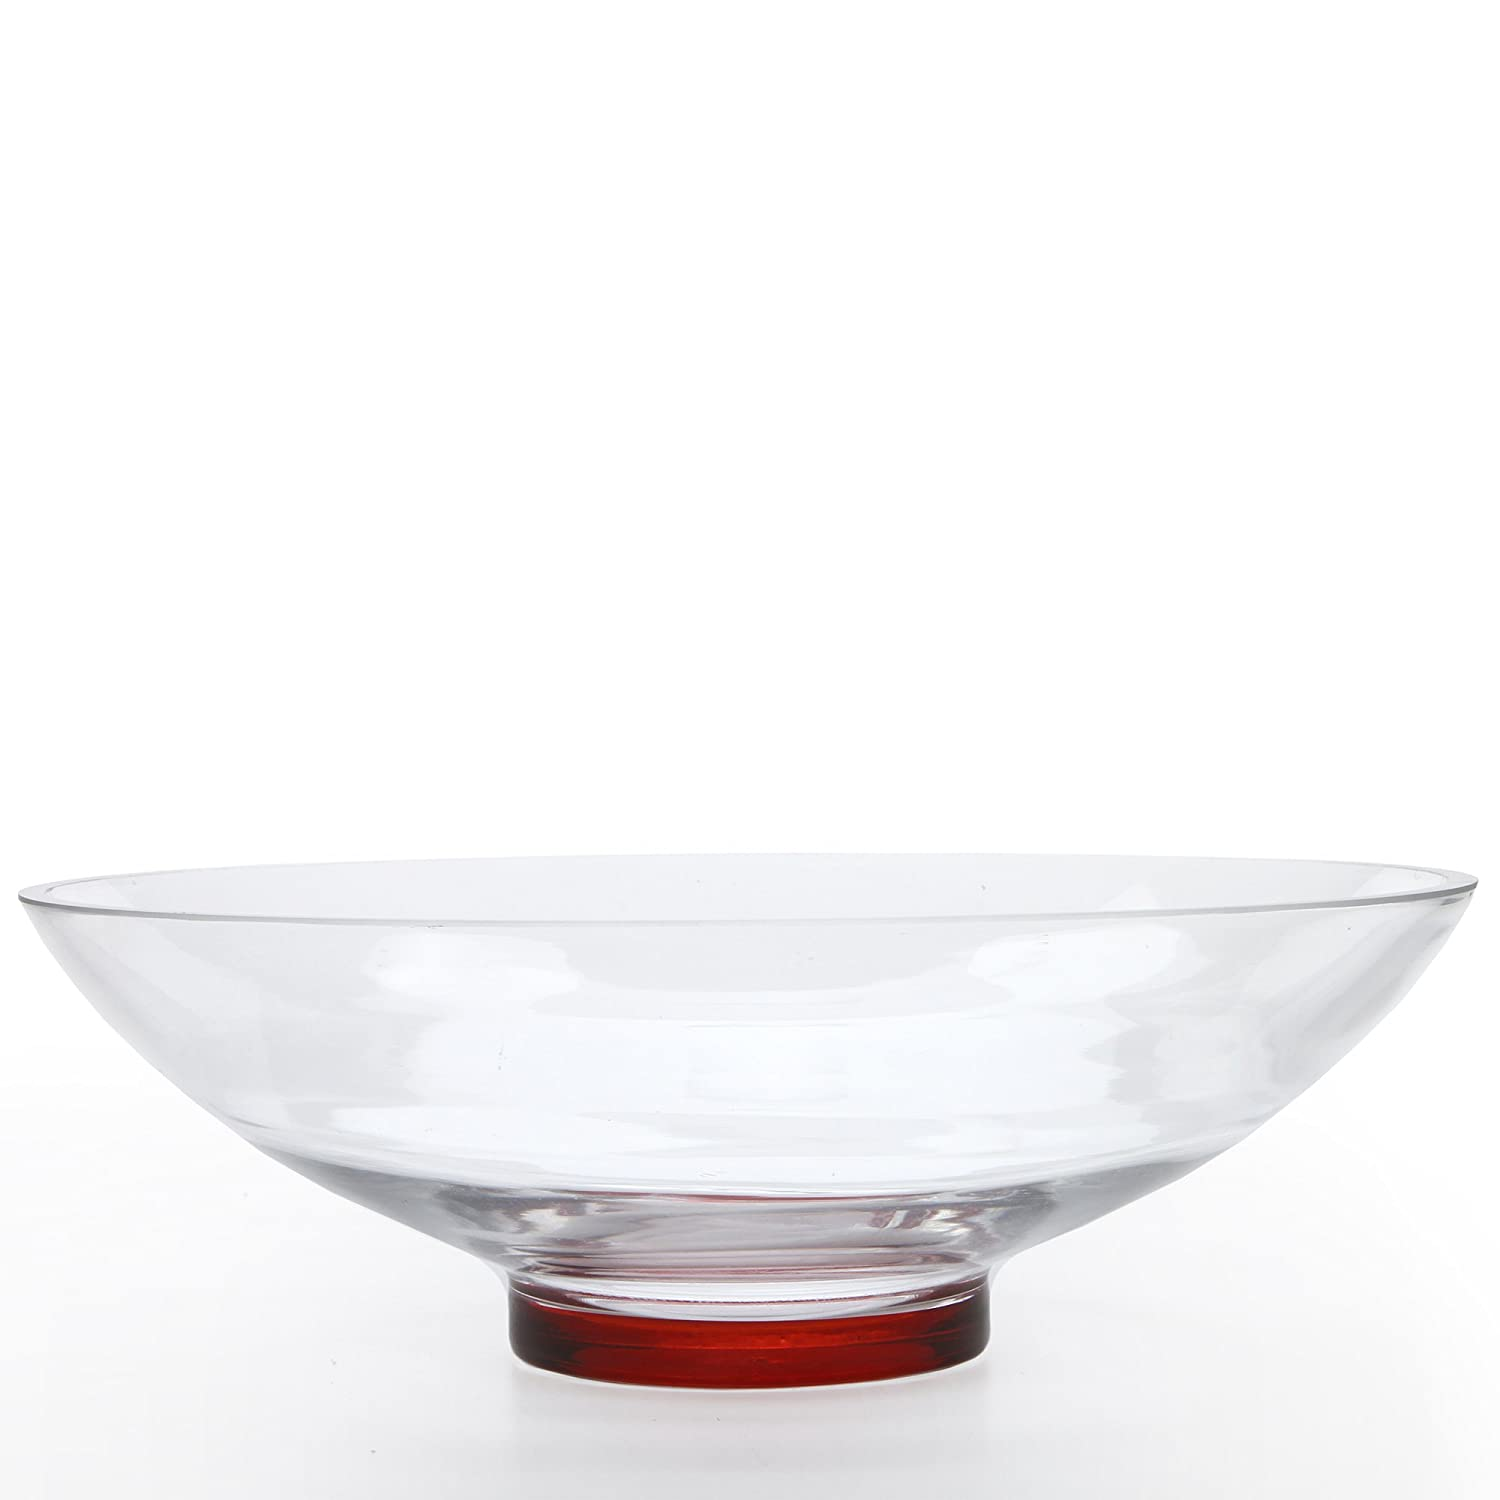 Hosley Clear Glass Bowl with Red Bottom, 11.8